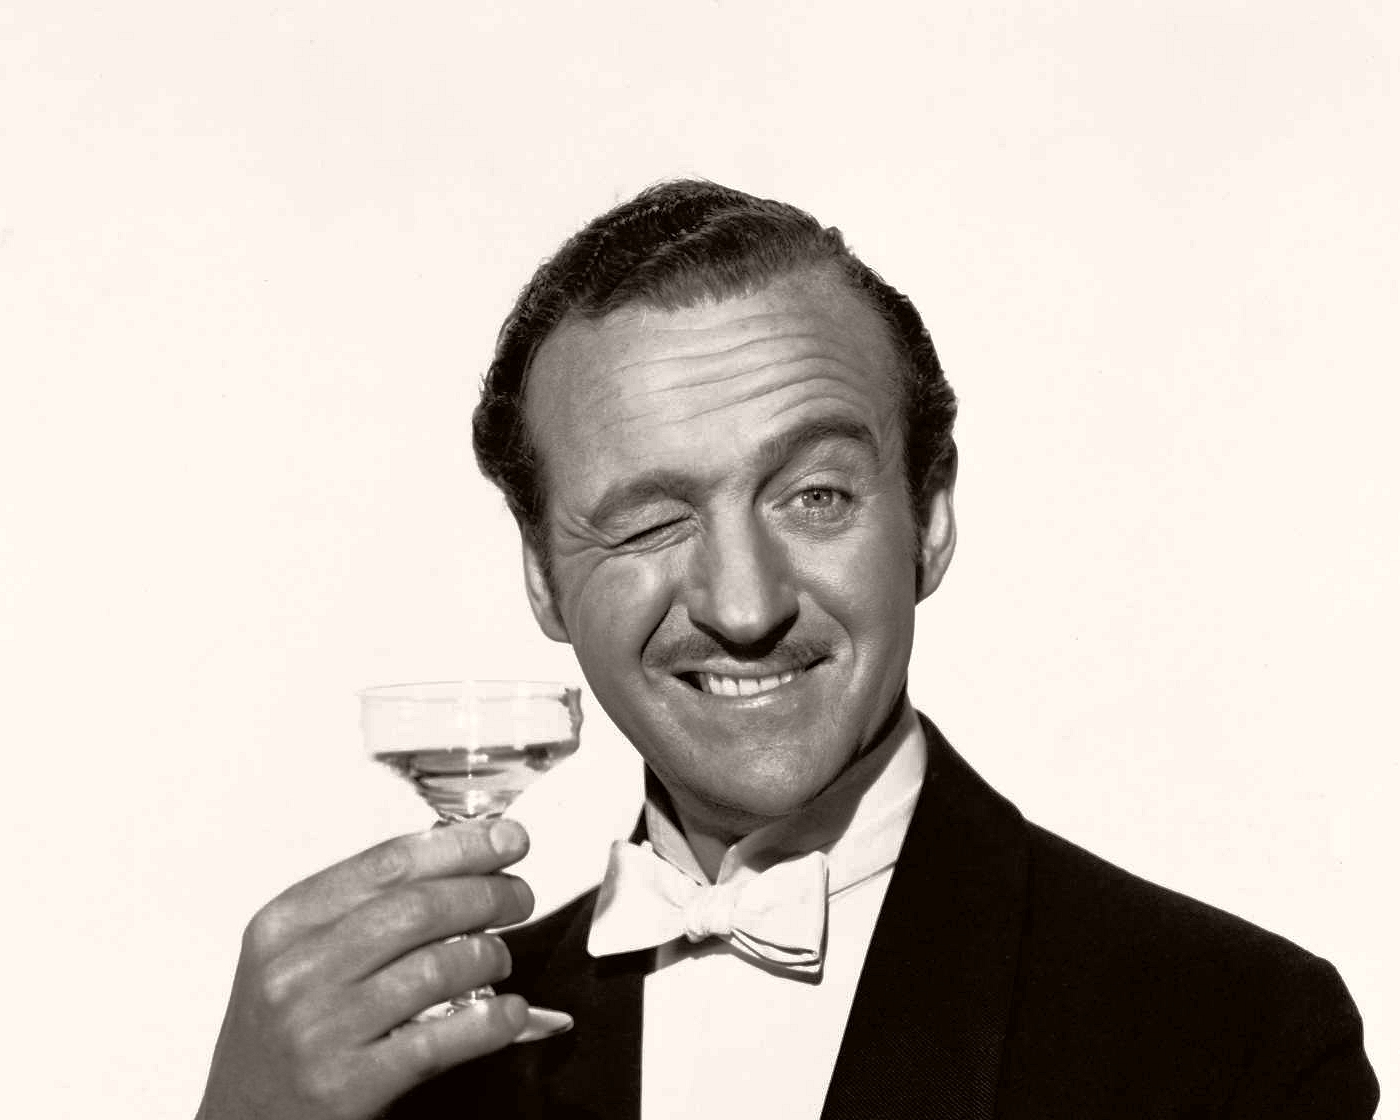 British actor David Niven, dressed in a dinner jacket an bow tie, raises a champagne coupé in a toast